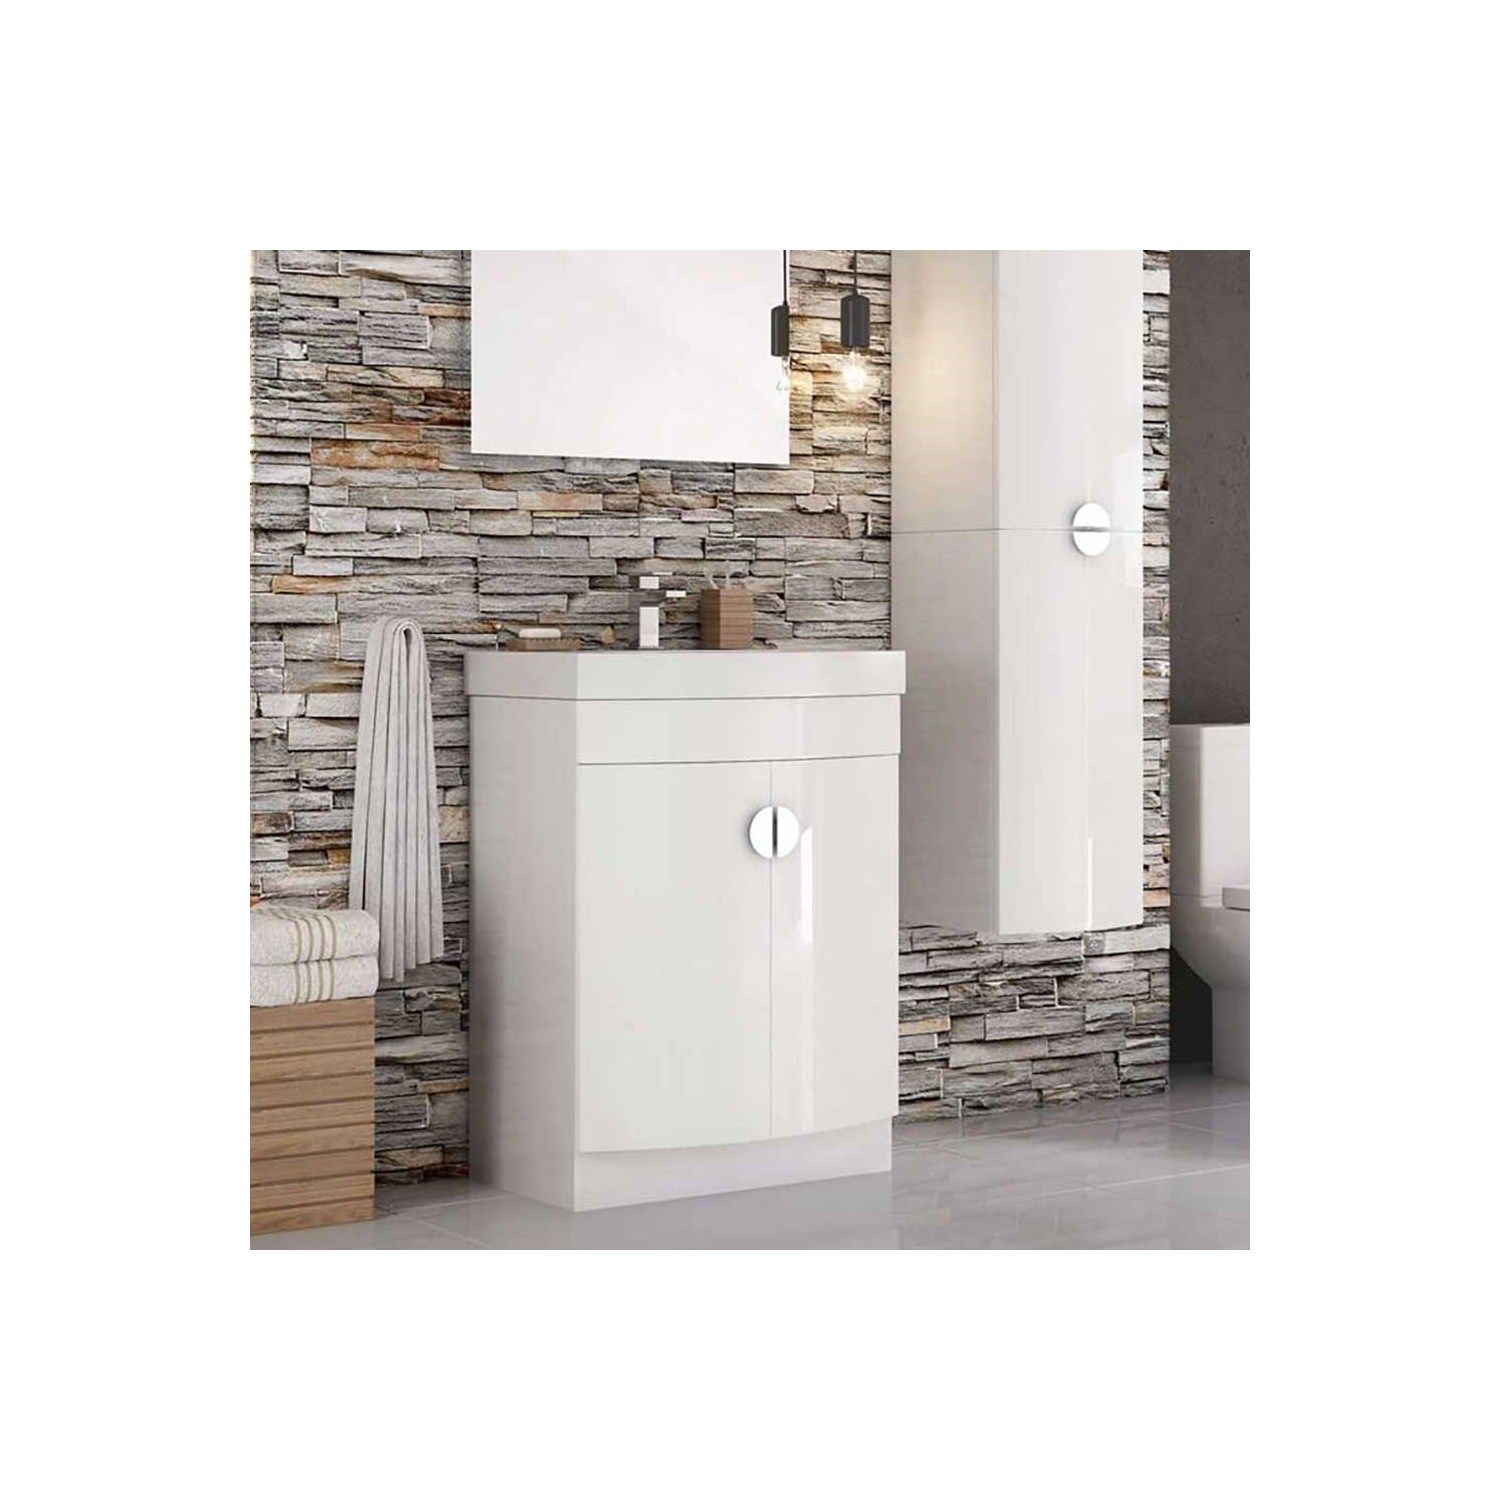 Harbour Acclaim D Shape 600mm Floorstanding Gloss White Vanity Unit & Basin. Proudly Brought to you by Drench. Free Delivery Over £500* 0% Finance Available* 3D Design Service